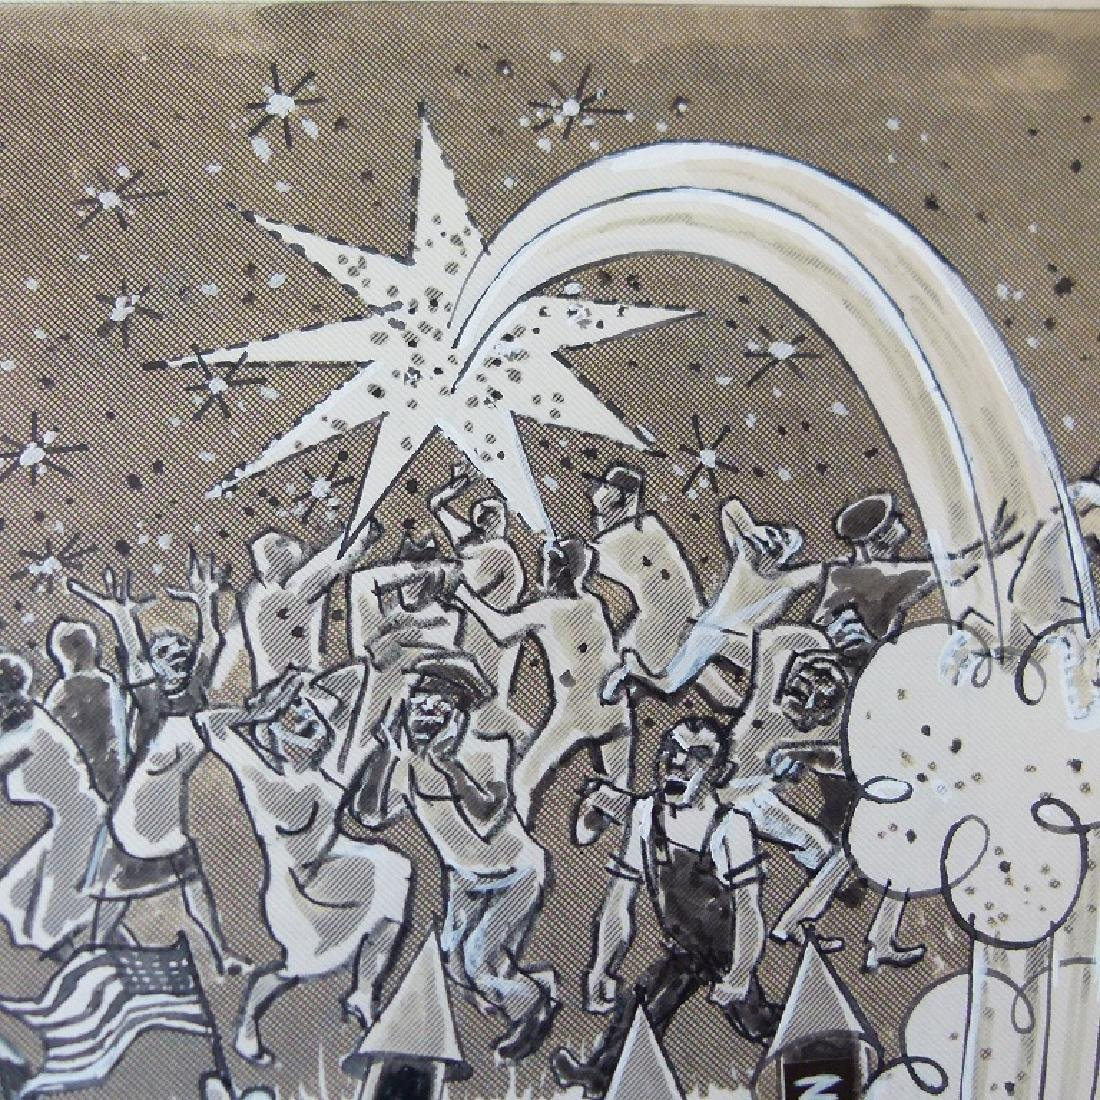 W/C GOUACHE POLITICAL CARTOONS SIGNED KELLER - 4